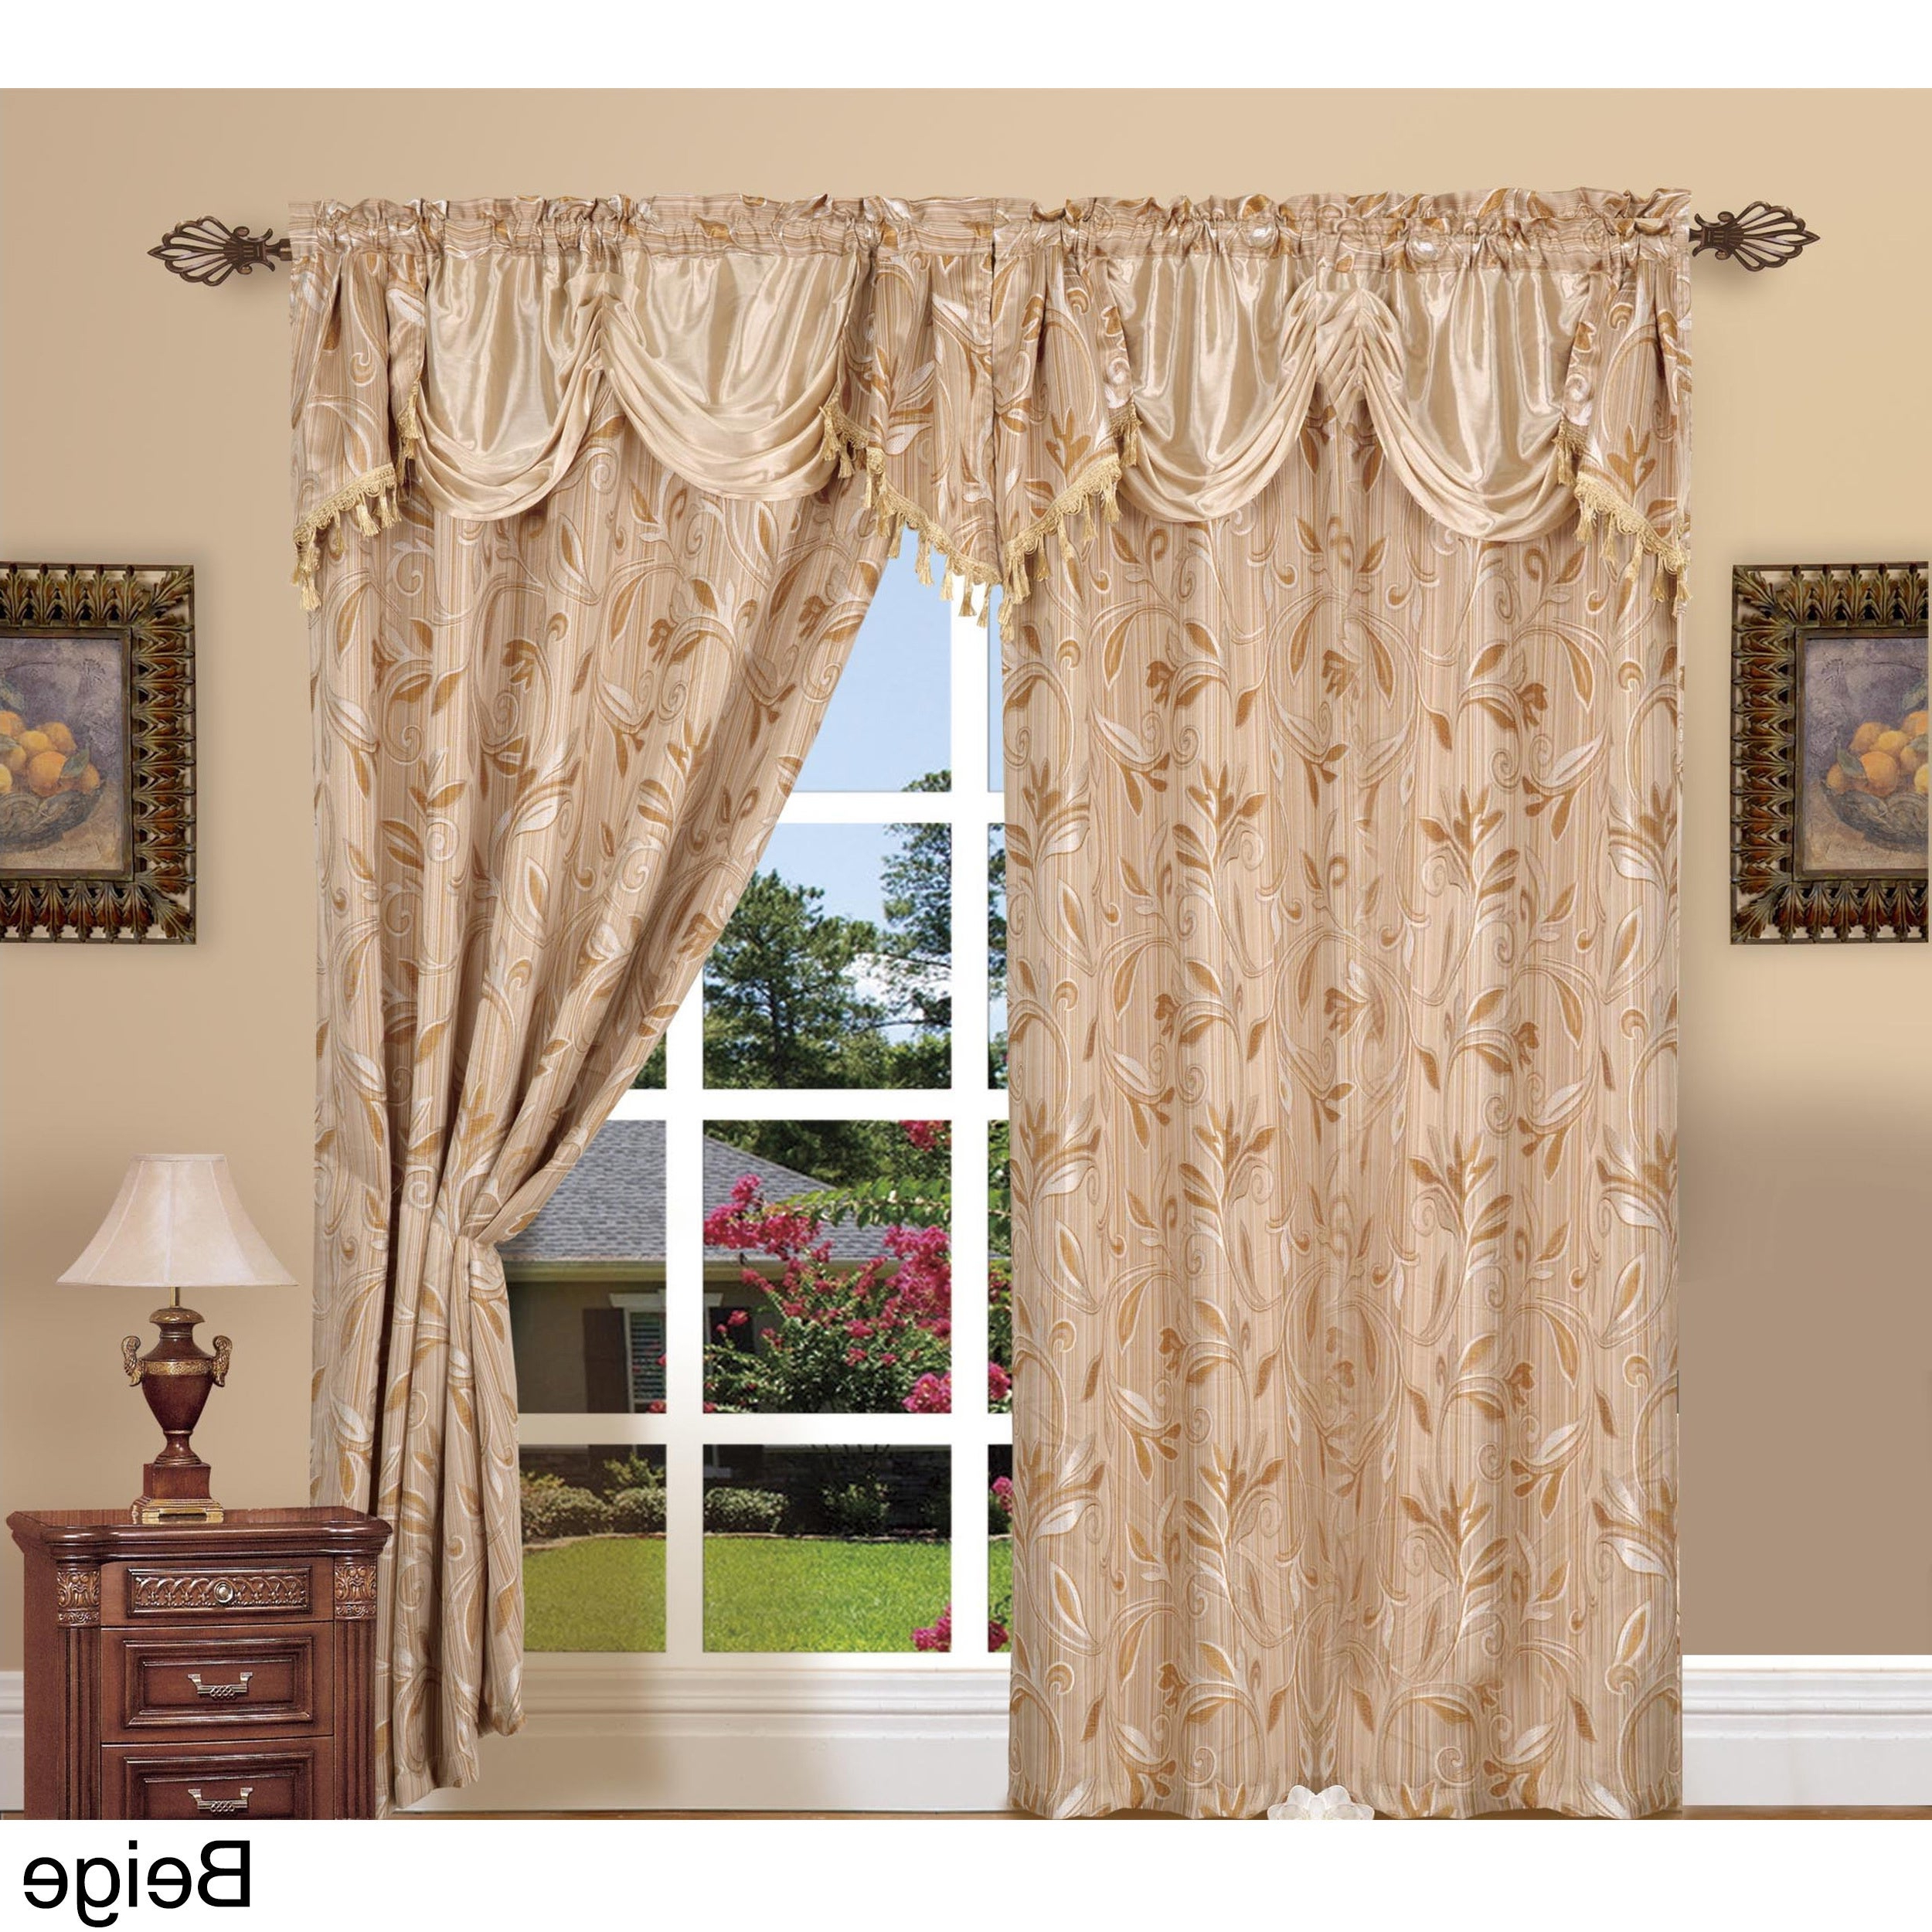 Elegant Comfort Luxury Jacquard Rod Pocket 54 Inch Window Curtain Panel Pair Throughout Most Current Elegant Comfort Window Sheer Curtain Panel Pairs (View 3 of 20)